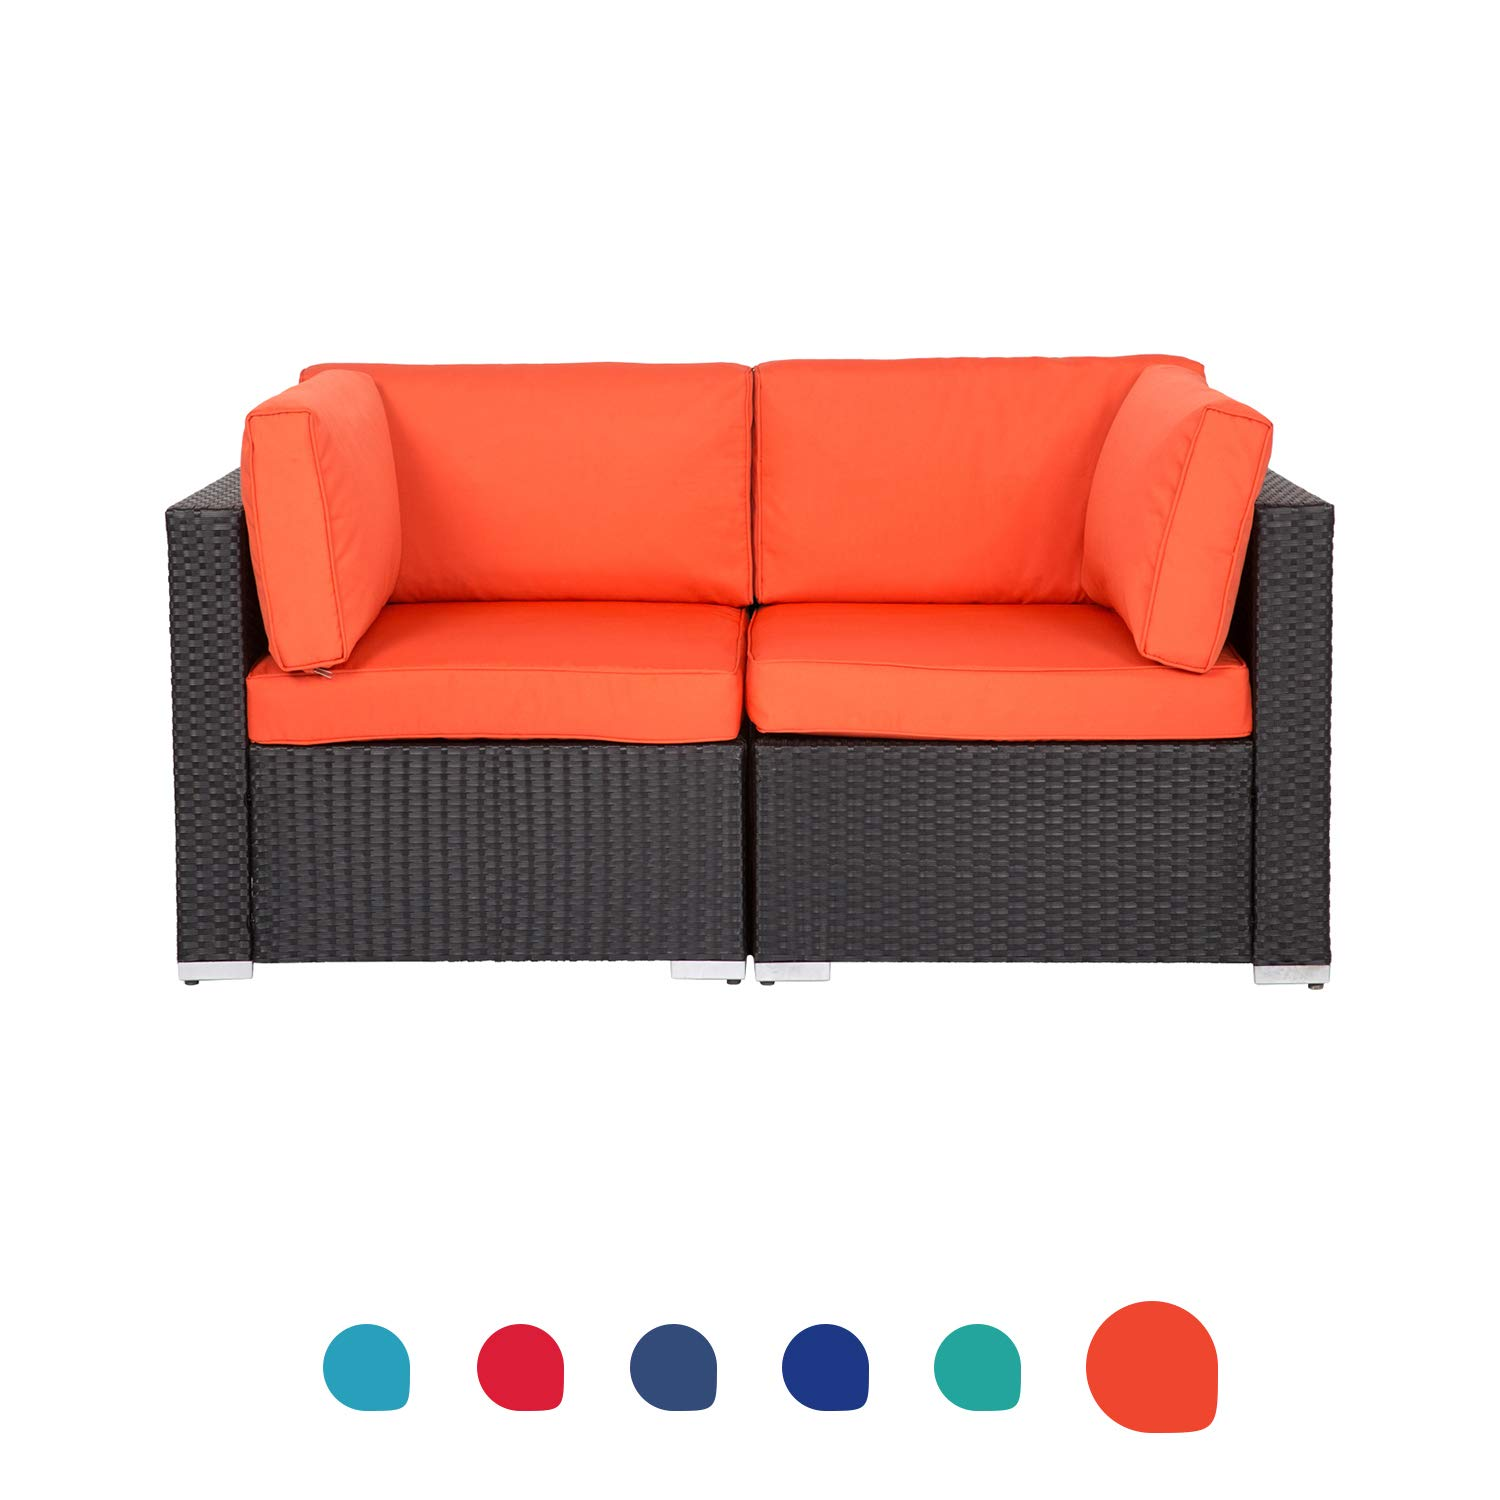 Peach Tree Wicker Loveseats Patio Sectional Corner Sofa All Weather Rattan Outdoor Thick Cotton Sofa Set